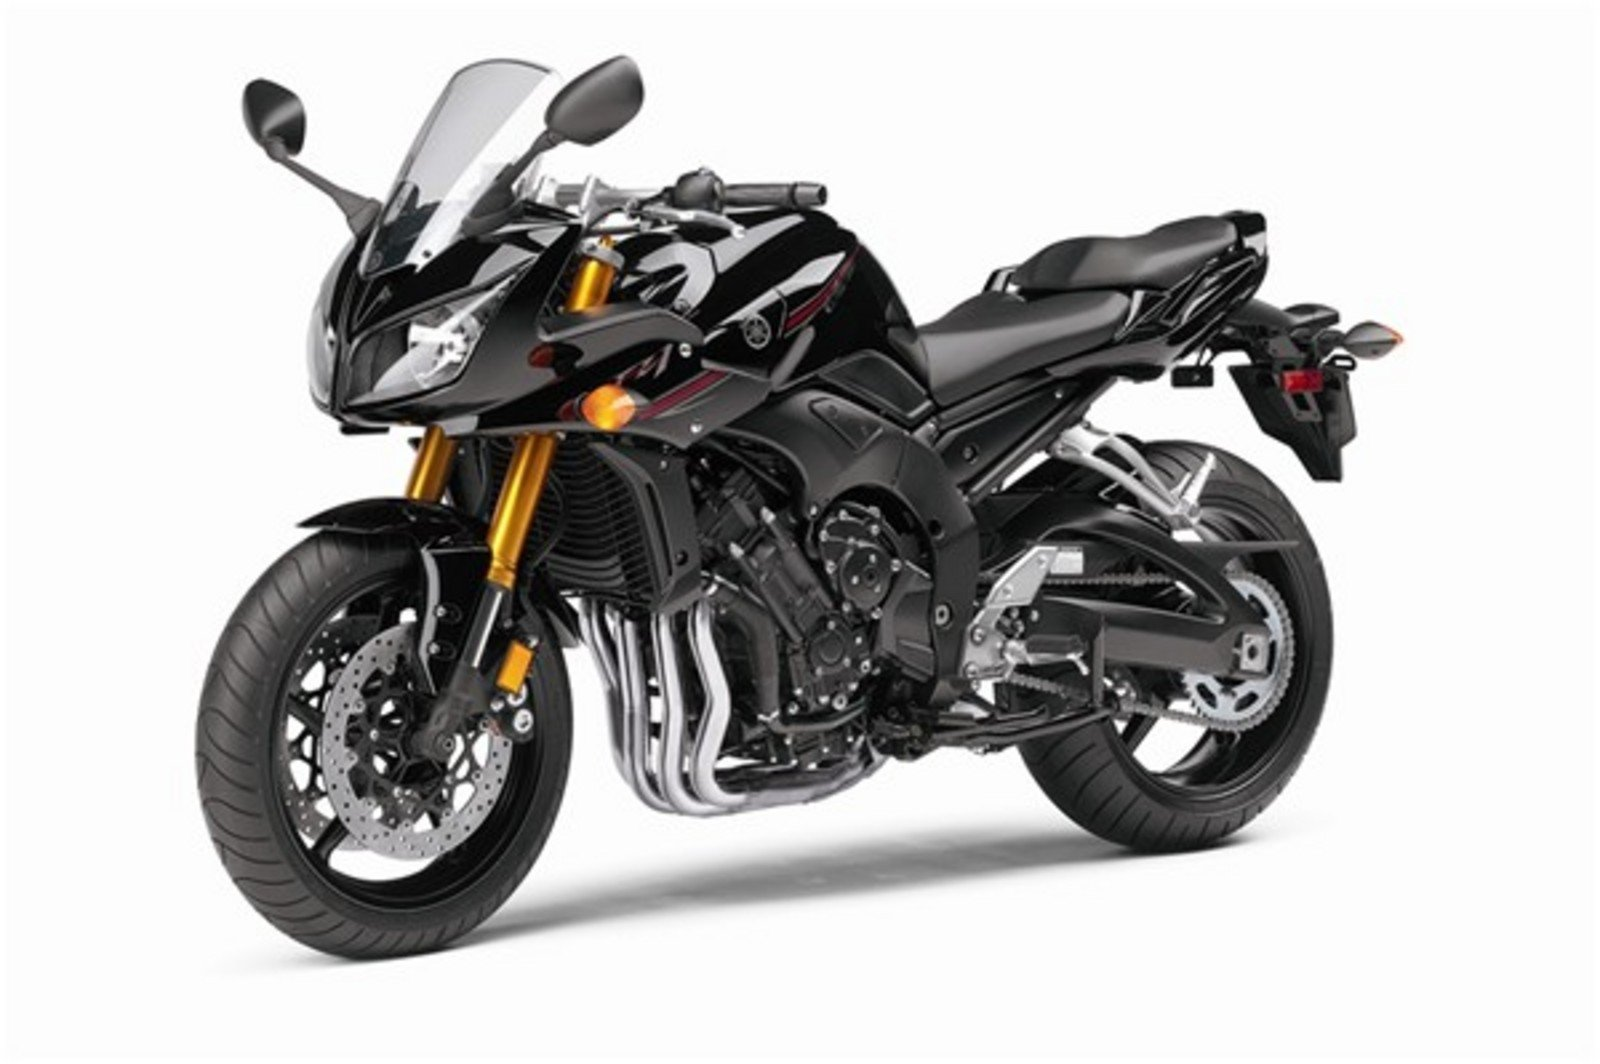 Yamaha fz1 photo - 6